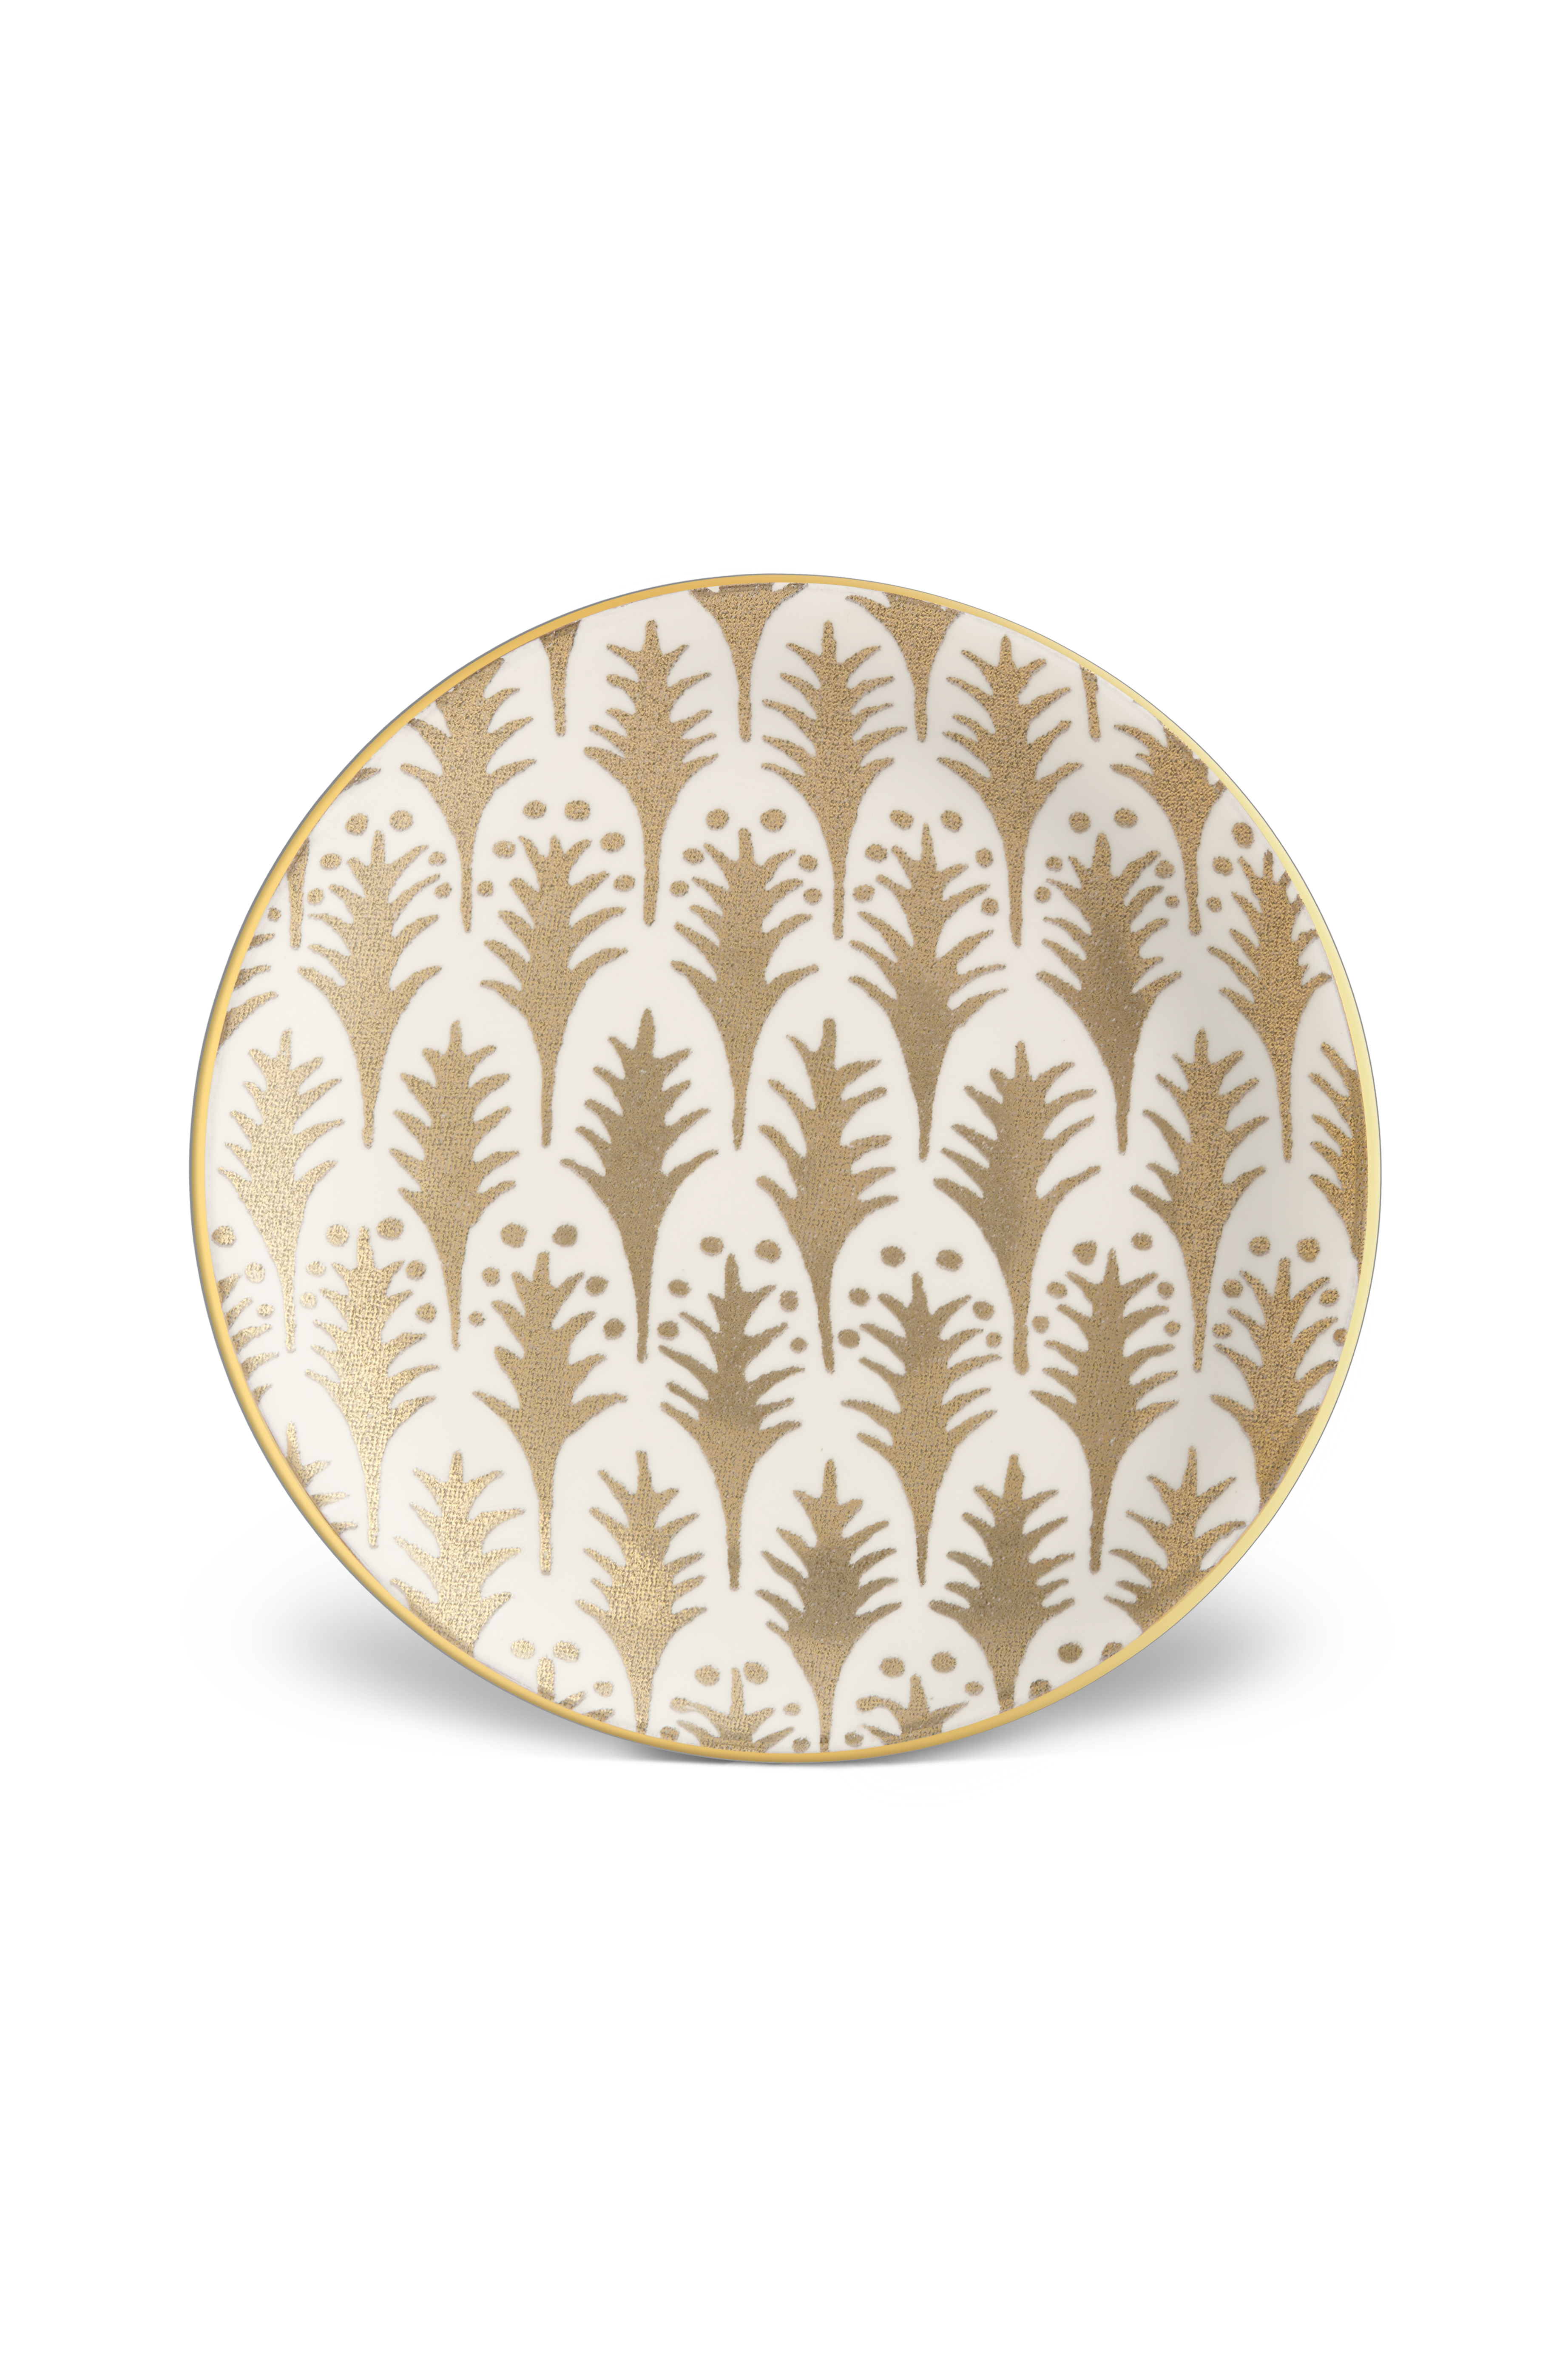 L objet fortuny canape plates piumette white gold paris for What is a canape plate